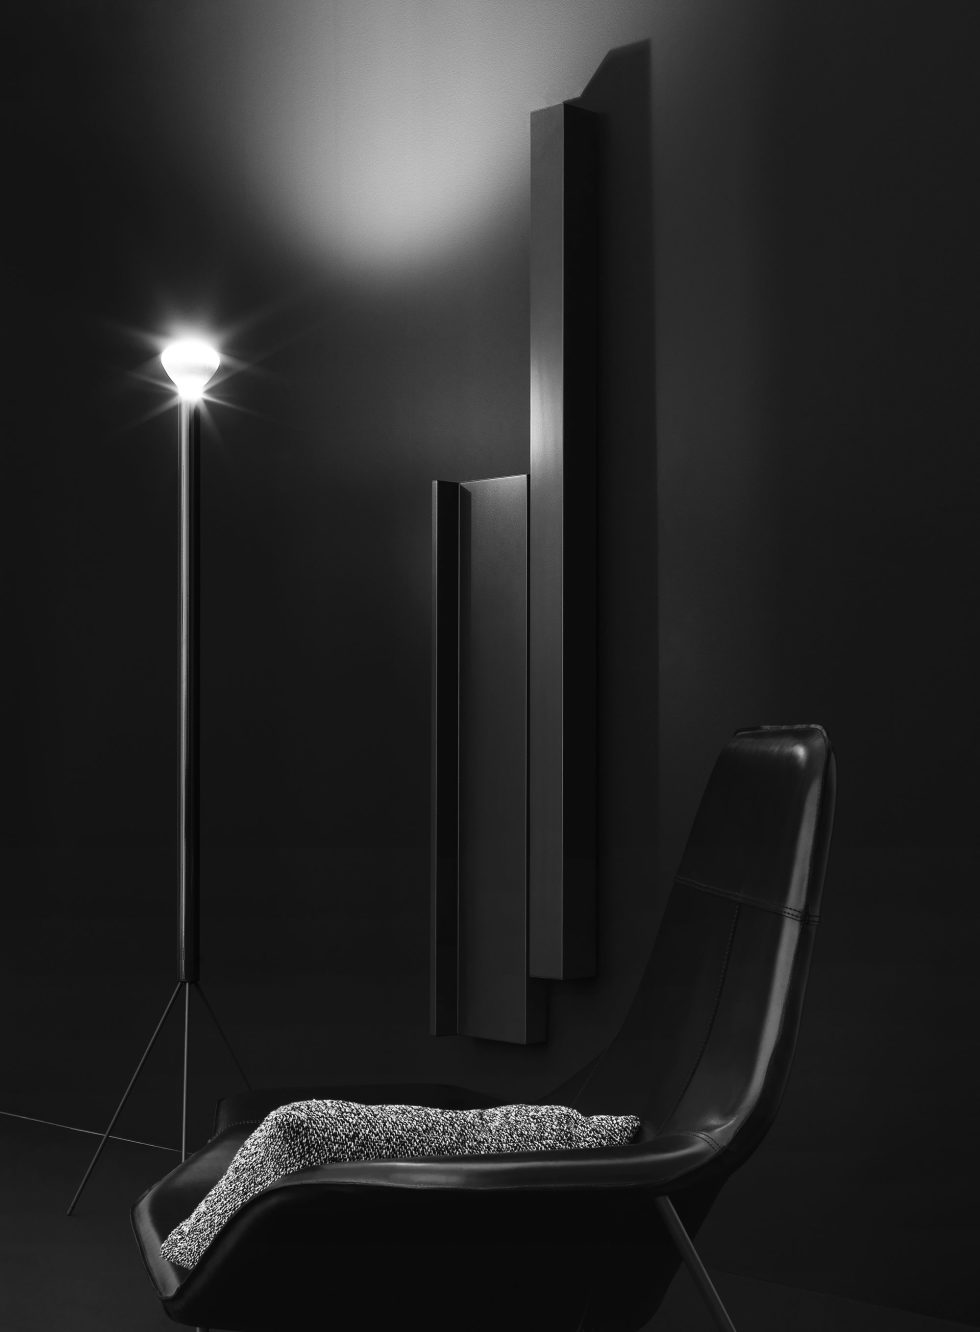 Tubes Radiatori, the Rift Radiator Wins the iF Design Award 2016